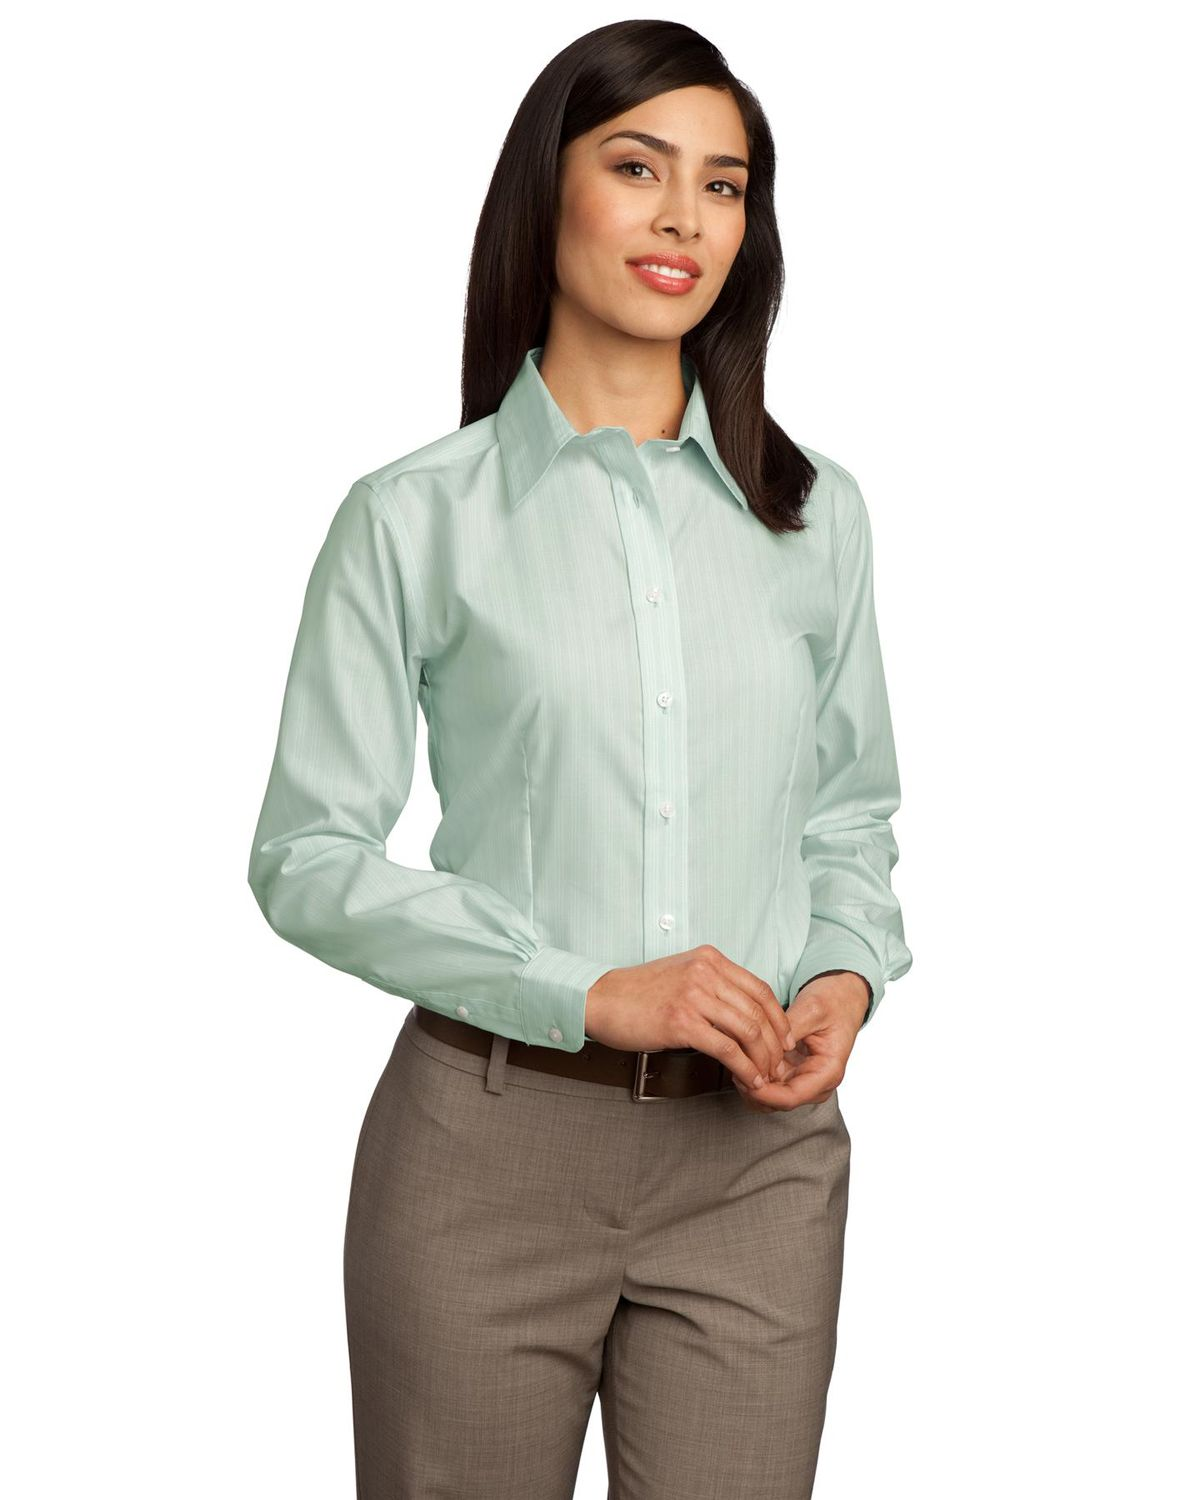 2e391d7a Fine Line Shirt - Buy discount 100% two-ply cotton red house ladies fine  line non-iron button-down shirt available in several colors at  Gotapparel.com.